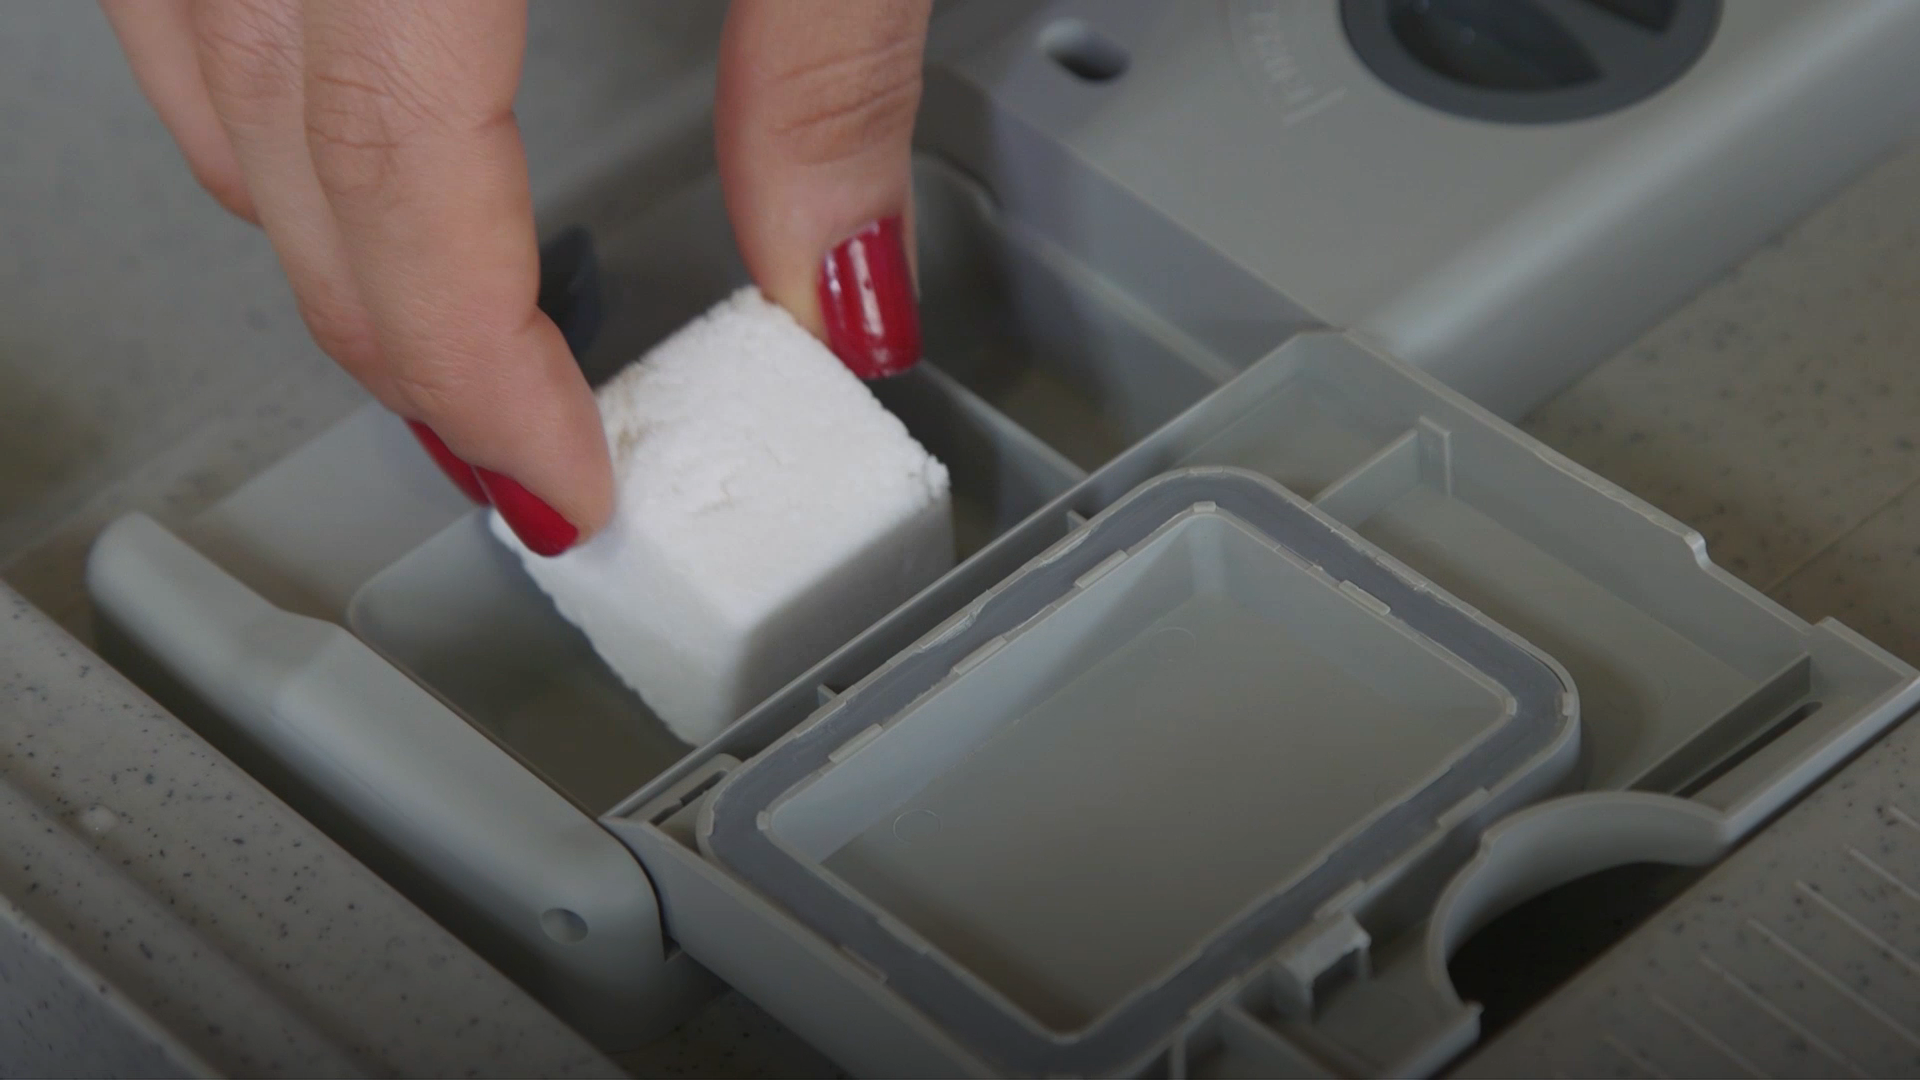 DIY dishwasher tablets: How to make them at home